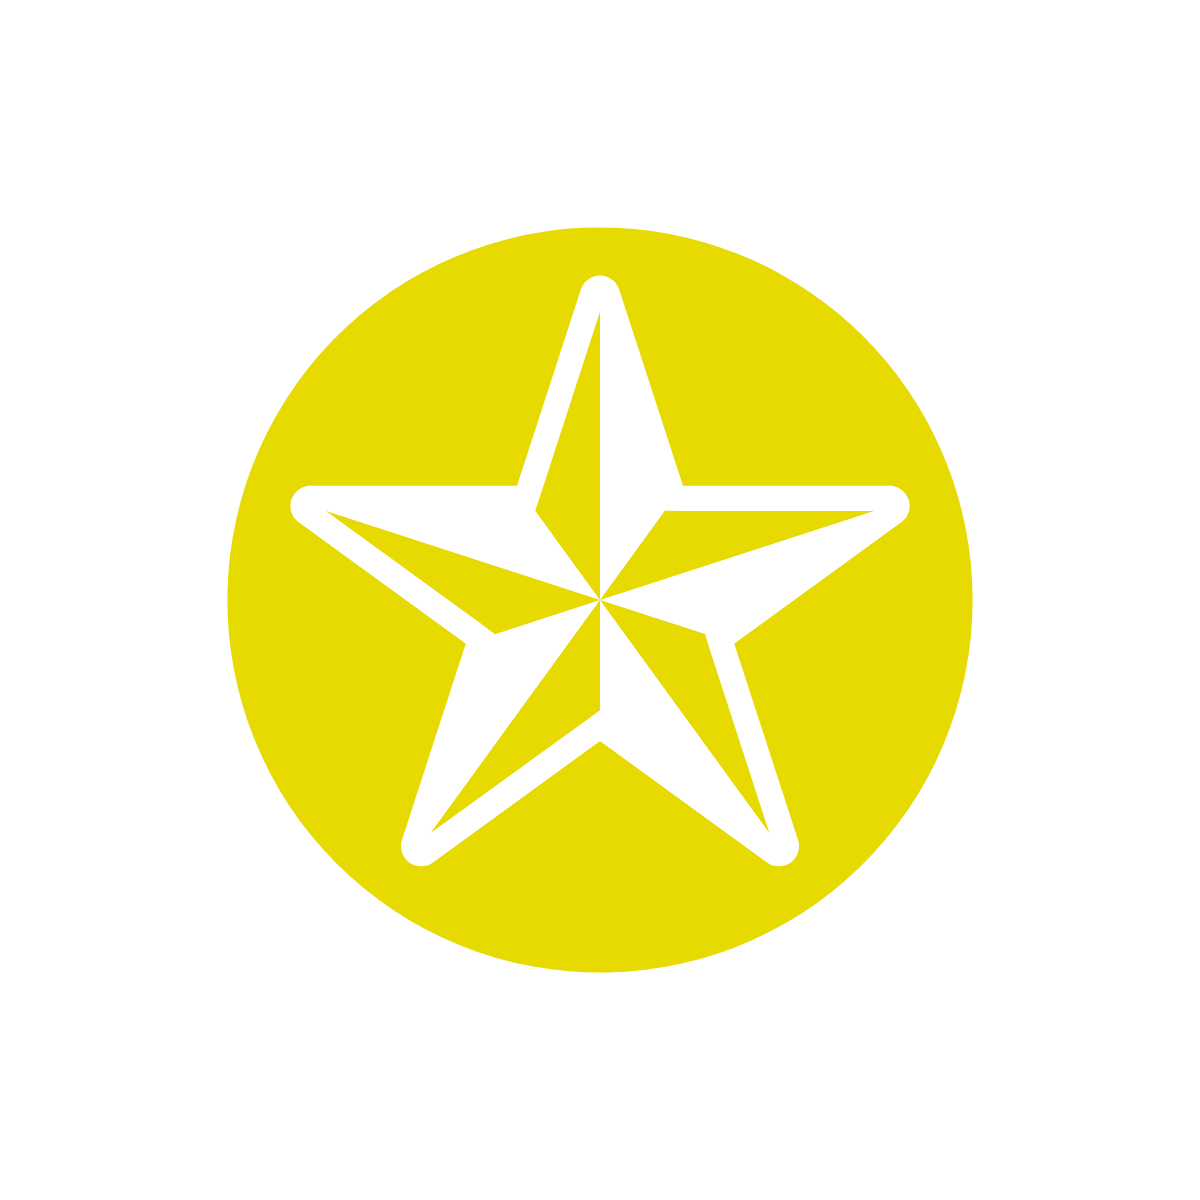 Simple image of a gold star